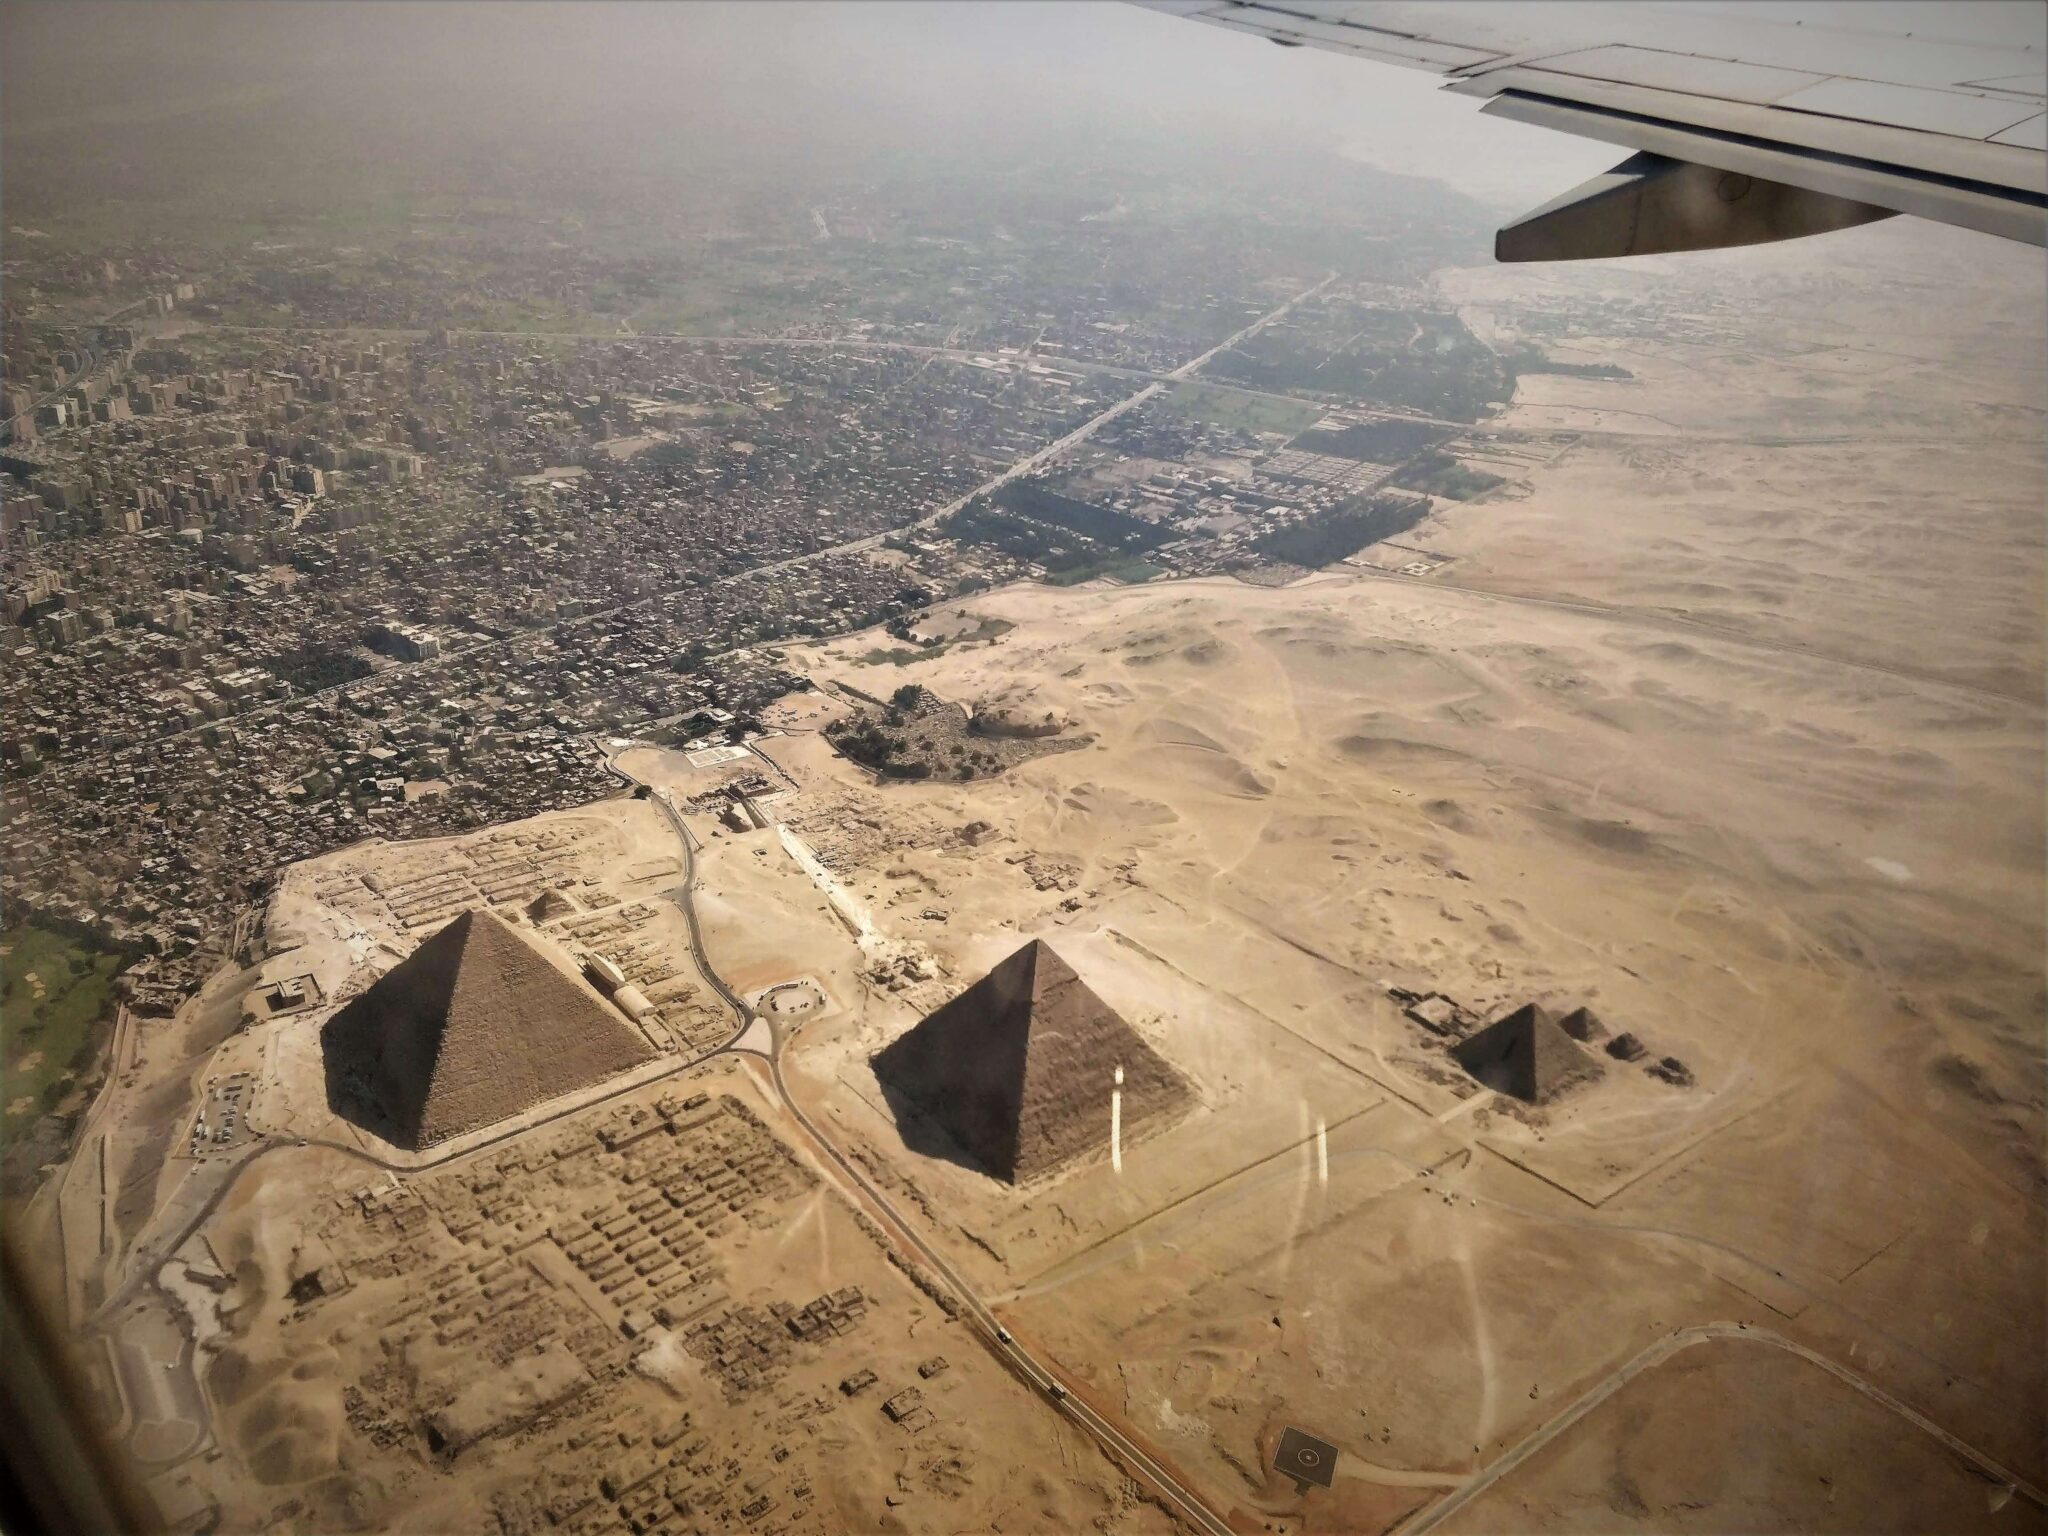 Cairo Egypt from an Airplane